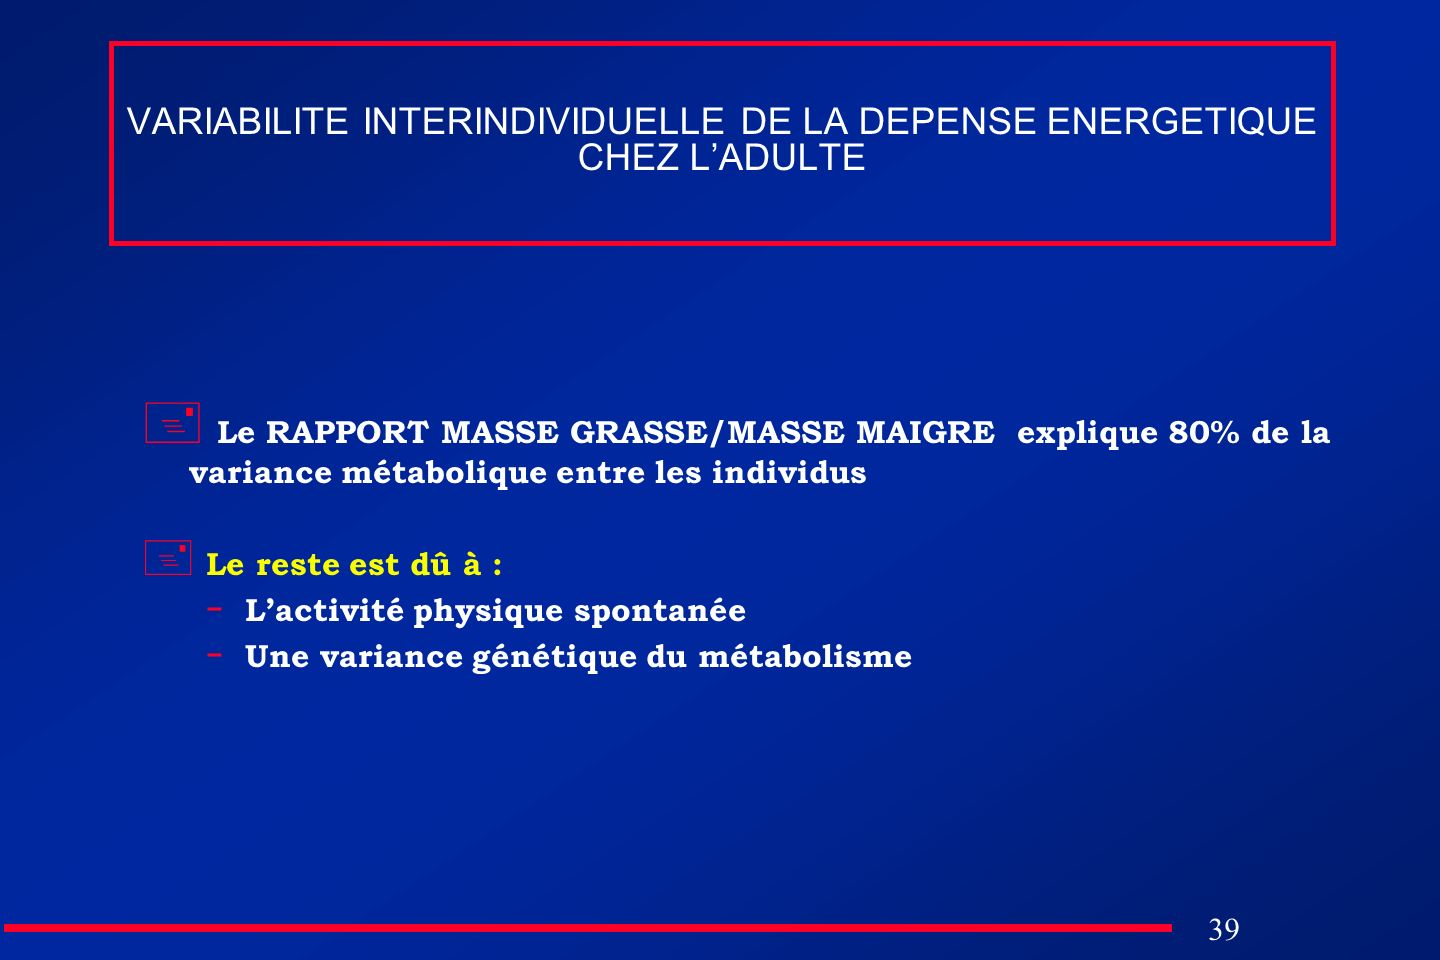 VARIABILITE INTERINDIVIDUELLE DE LA DEPENSE ENERGETIQUE CHEZ L'ADULTE